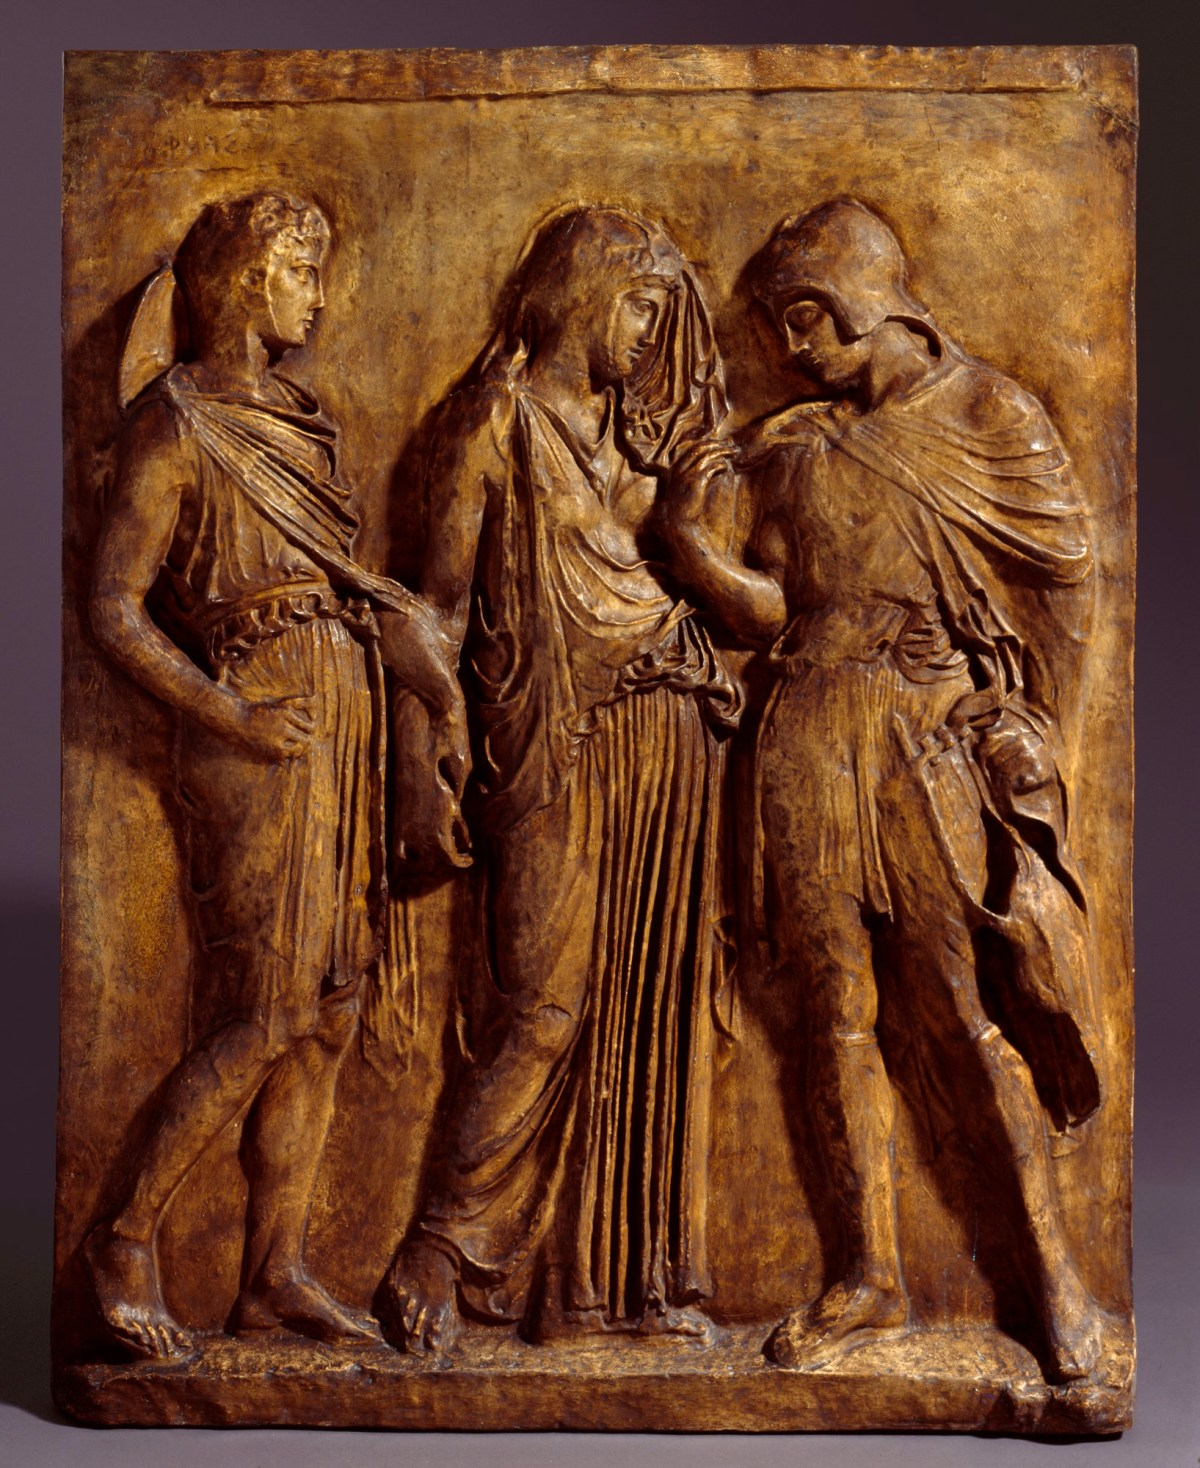 Museo Archeologico Di Napoli.Cast Of Three Figured Relief Depicting Hermes Eurydice And Orpheus